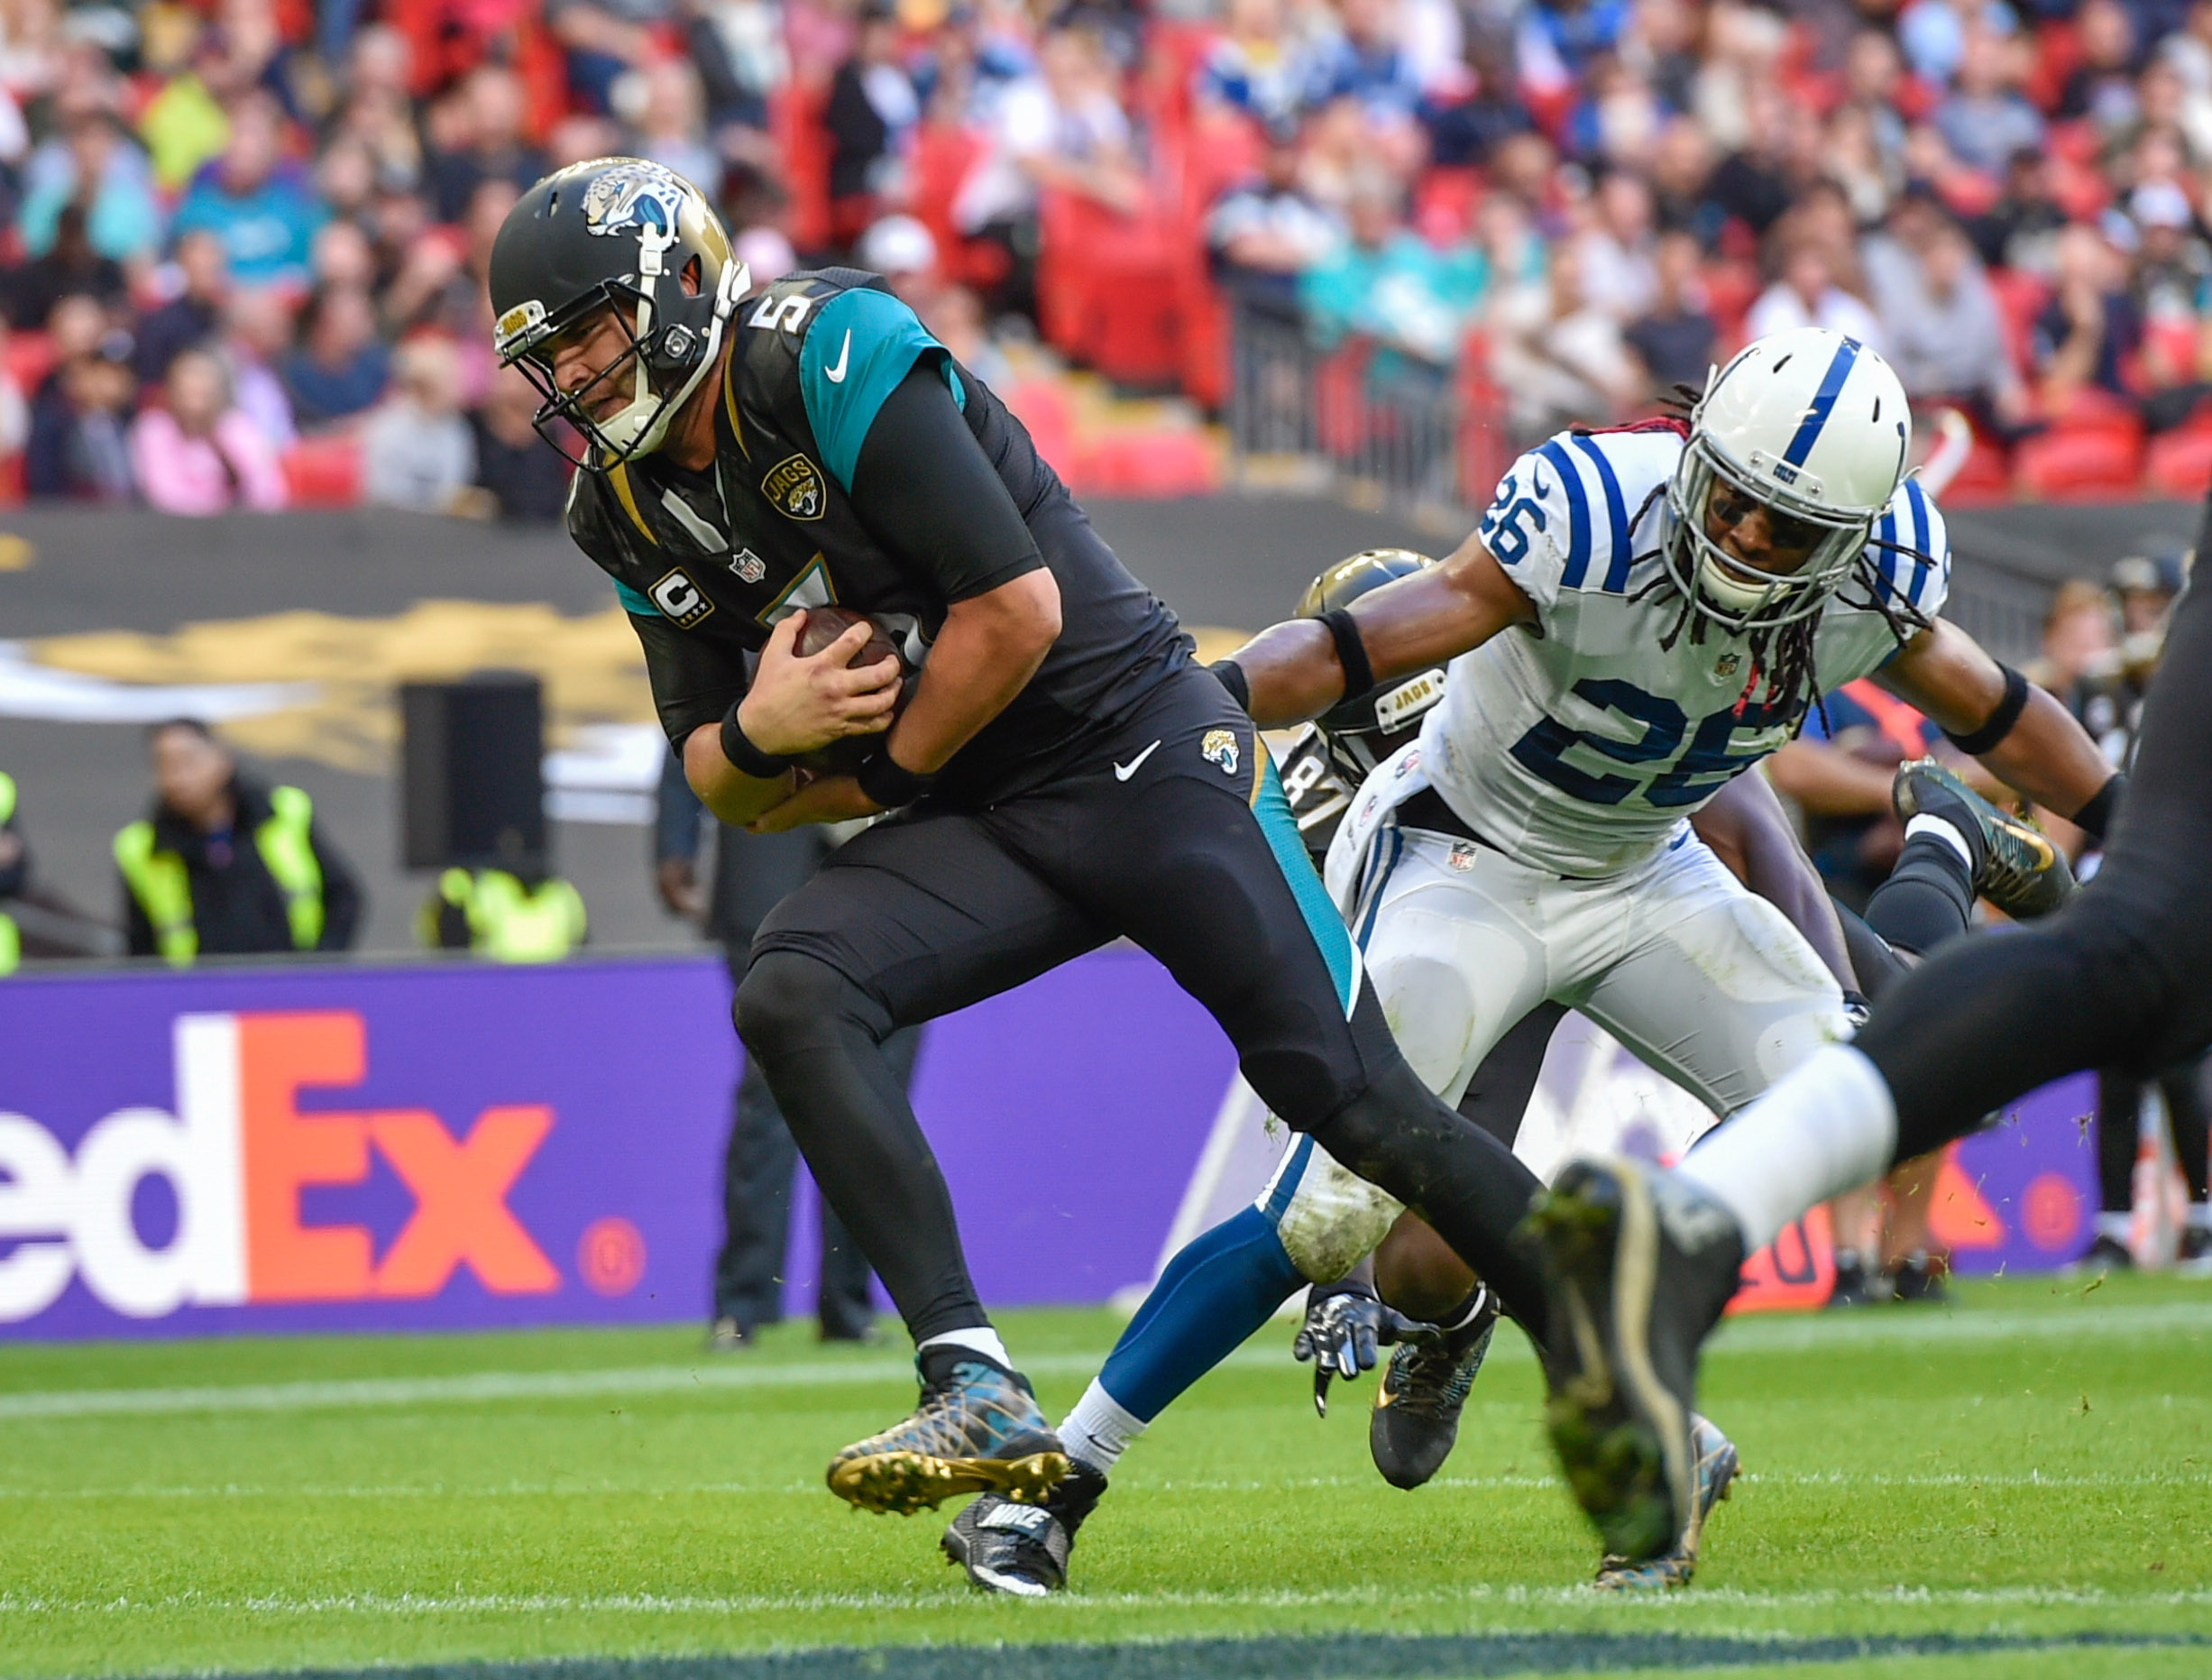 9584184-nfl-international-series-indianapolis-colts-at-jacksonville-jaguars